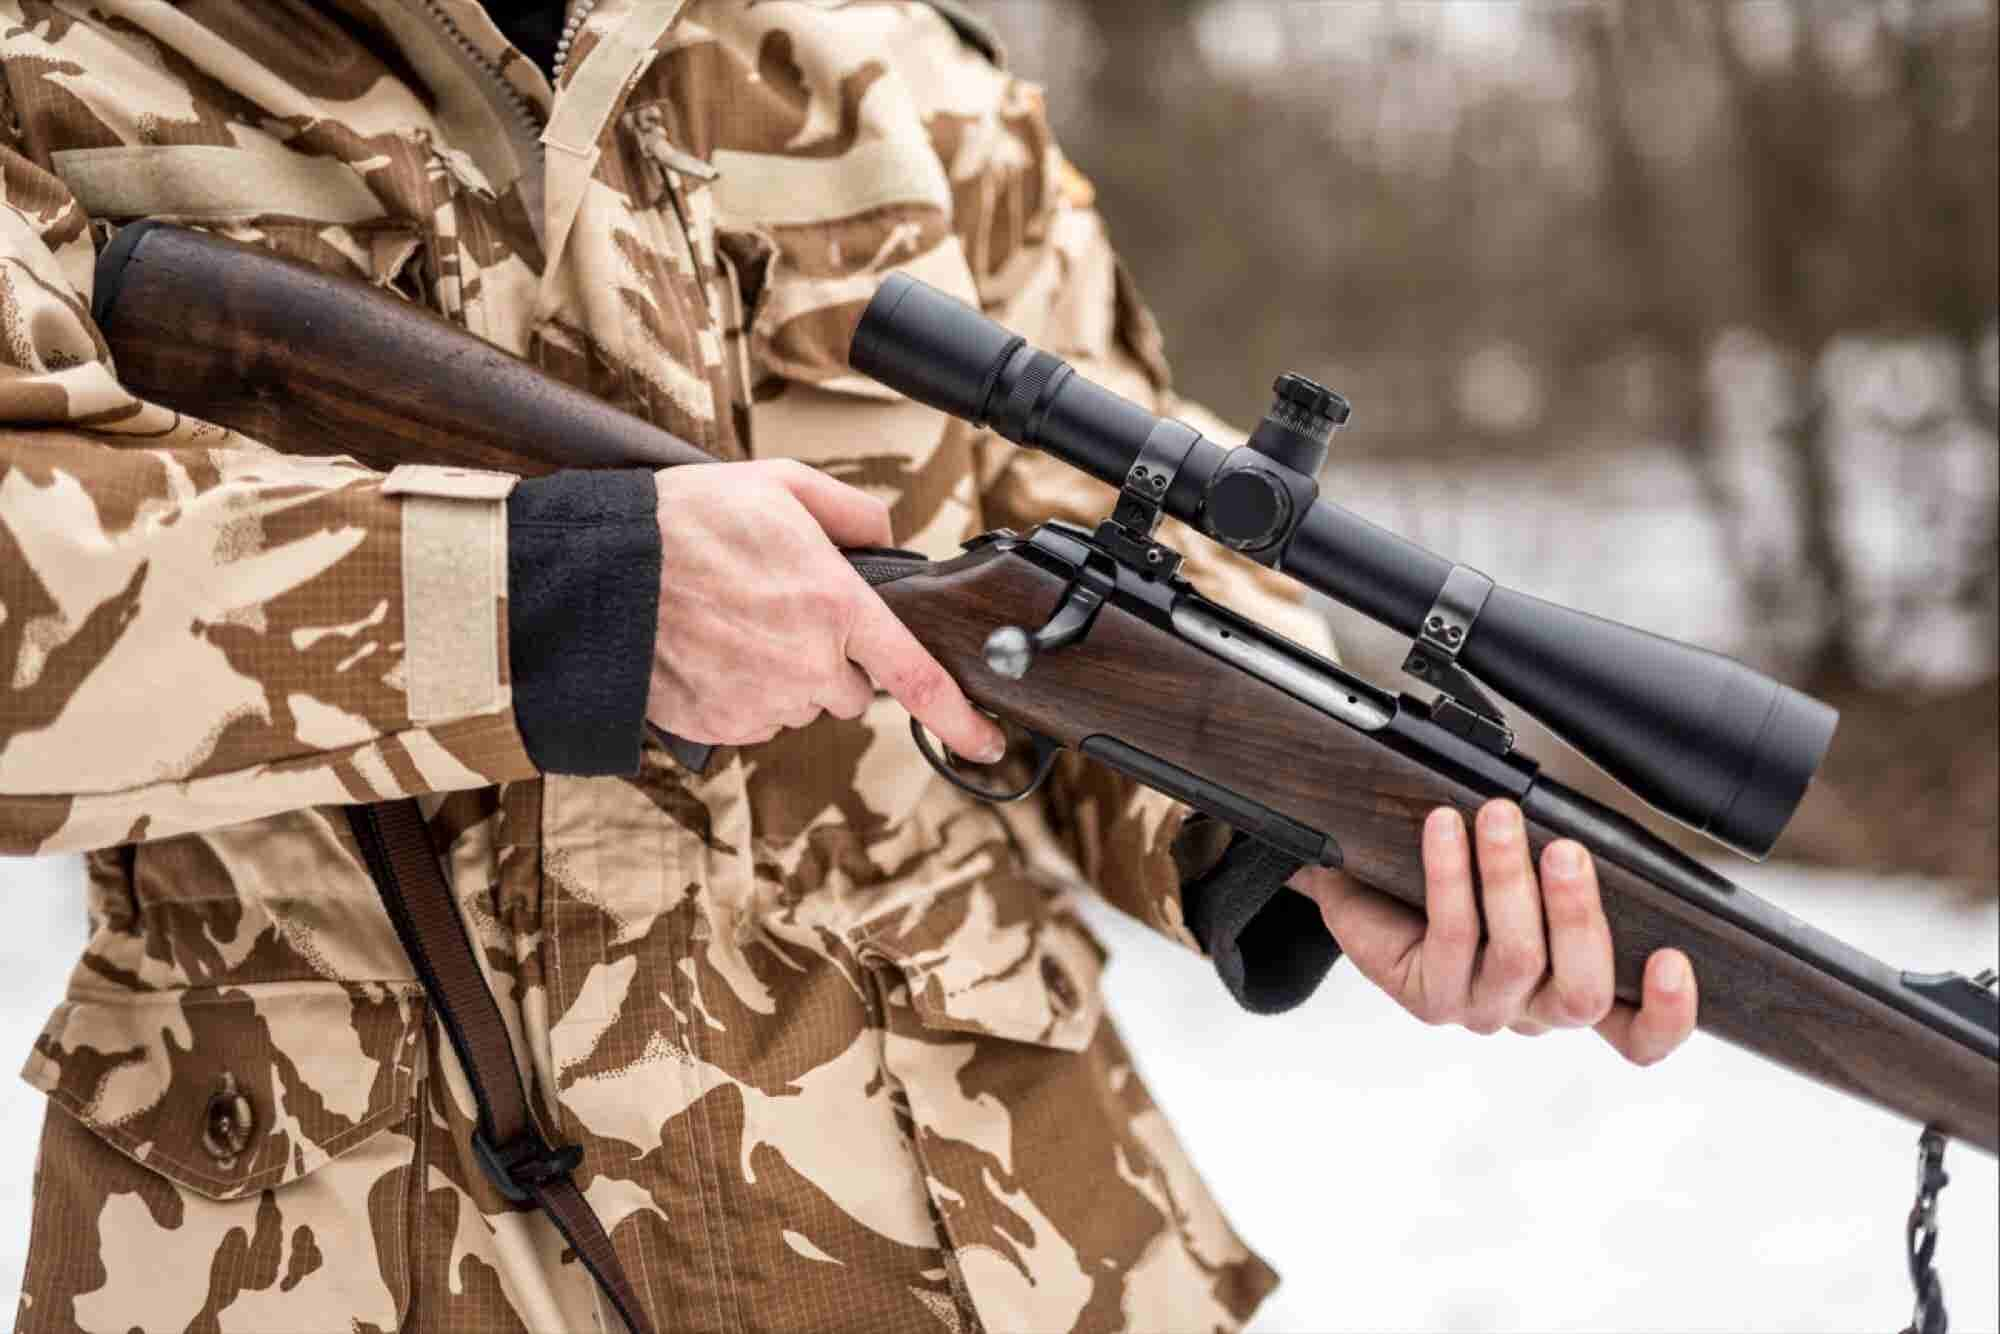 3 Focus Tips I Learned From Shooting a Sniper Rifle With a Psychologis...